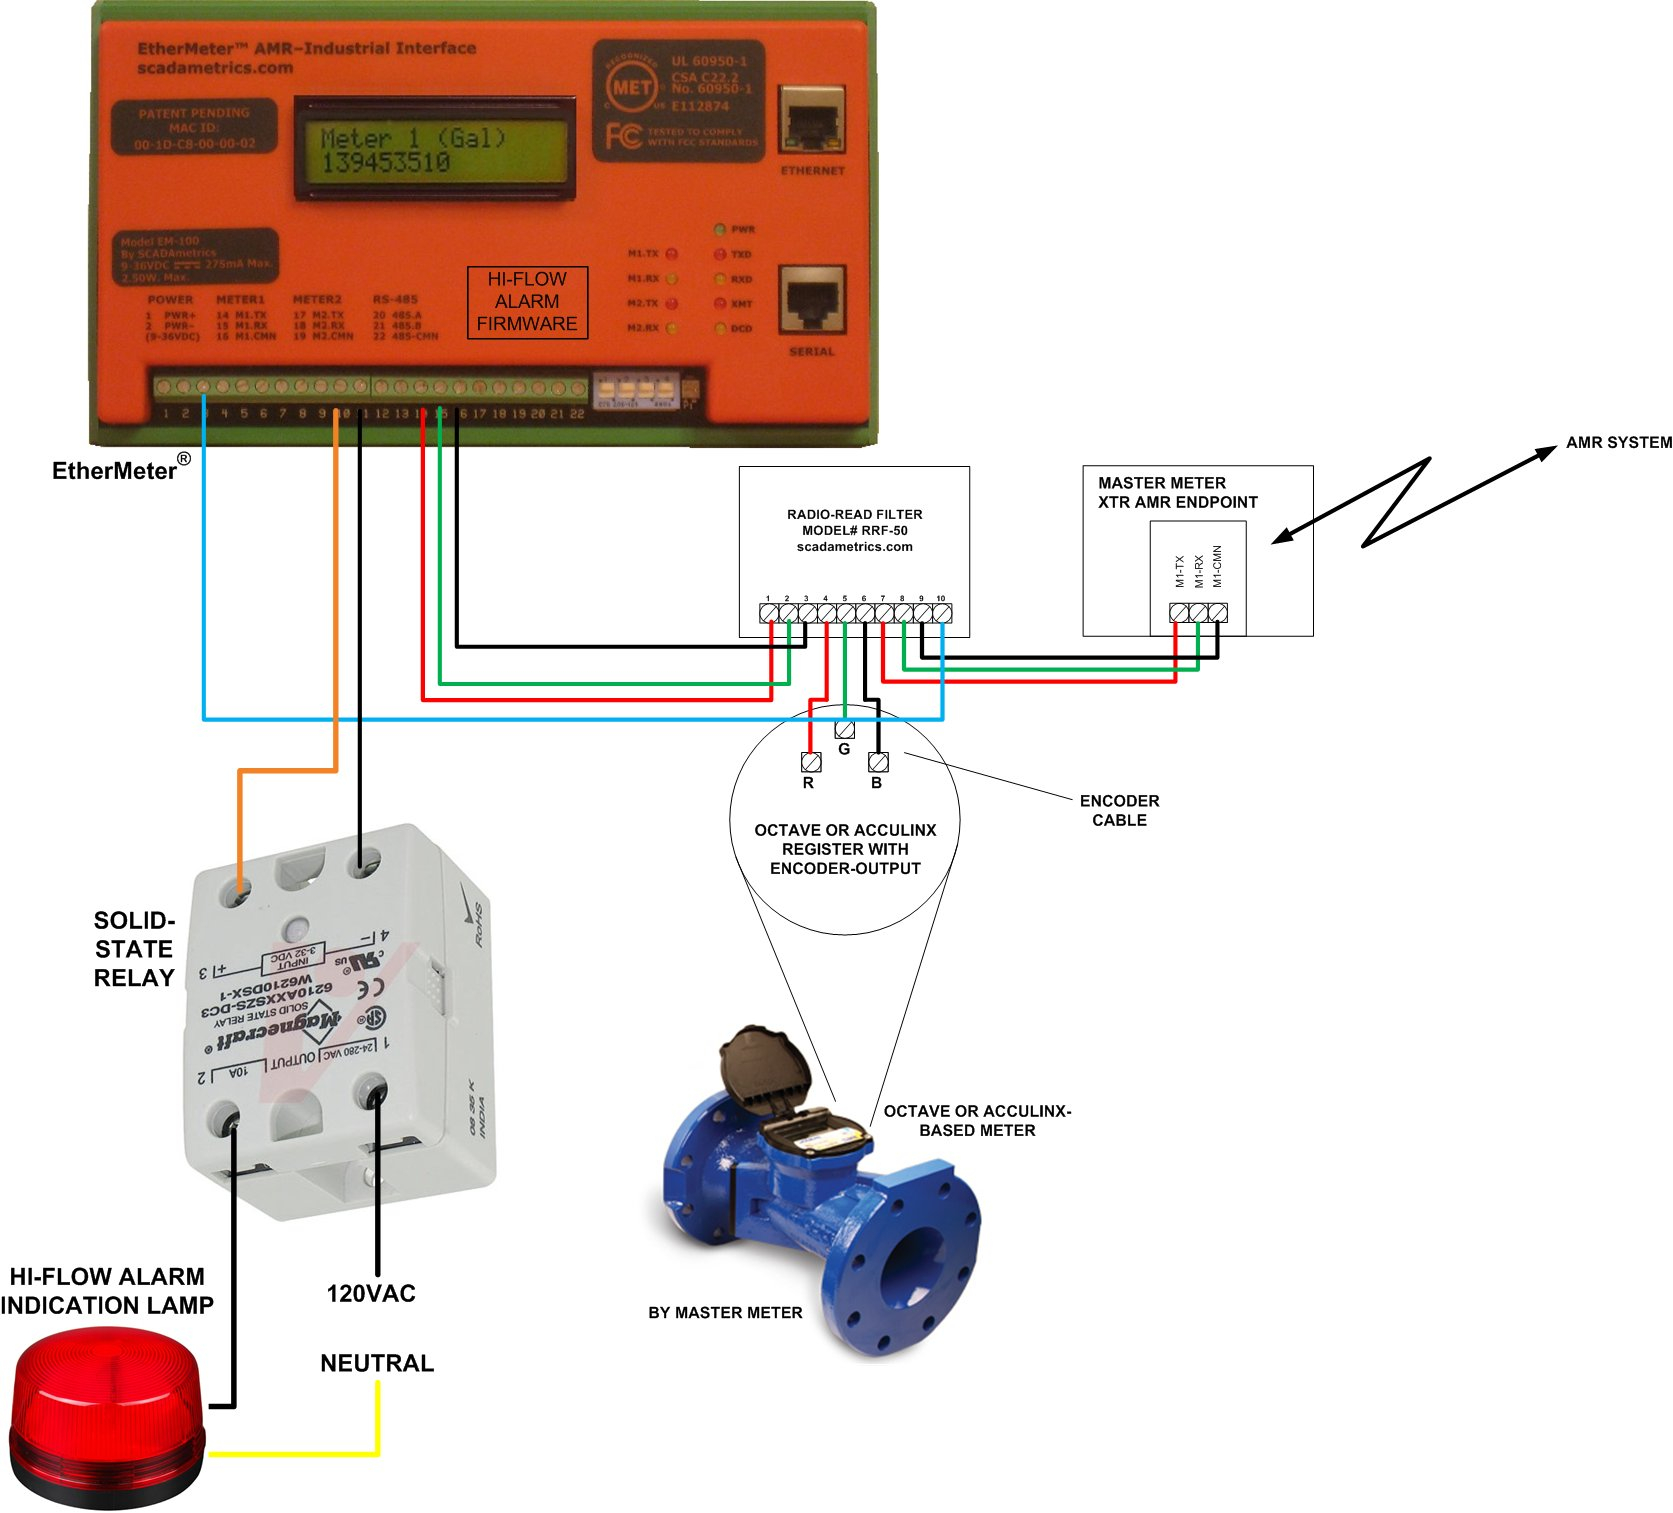 neptune water meter wiring diagram Collection-BooneIA Schematic 01 In Flow Meter Wiring Diagram 5-c